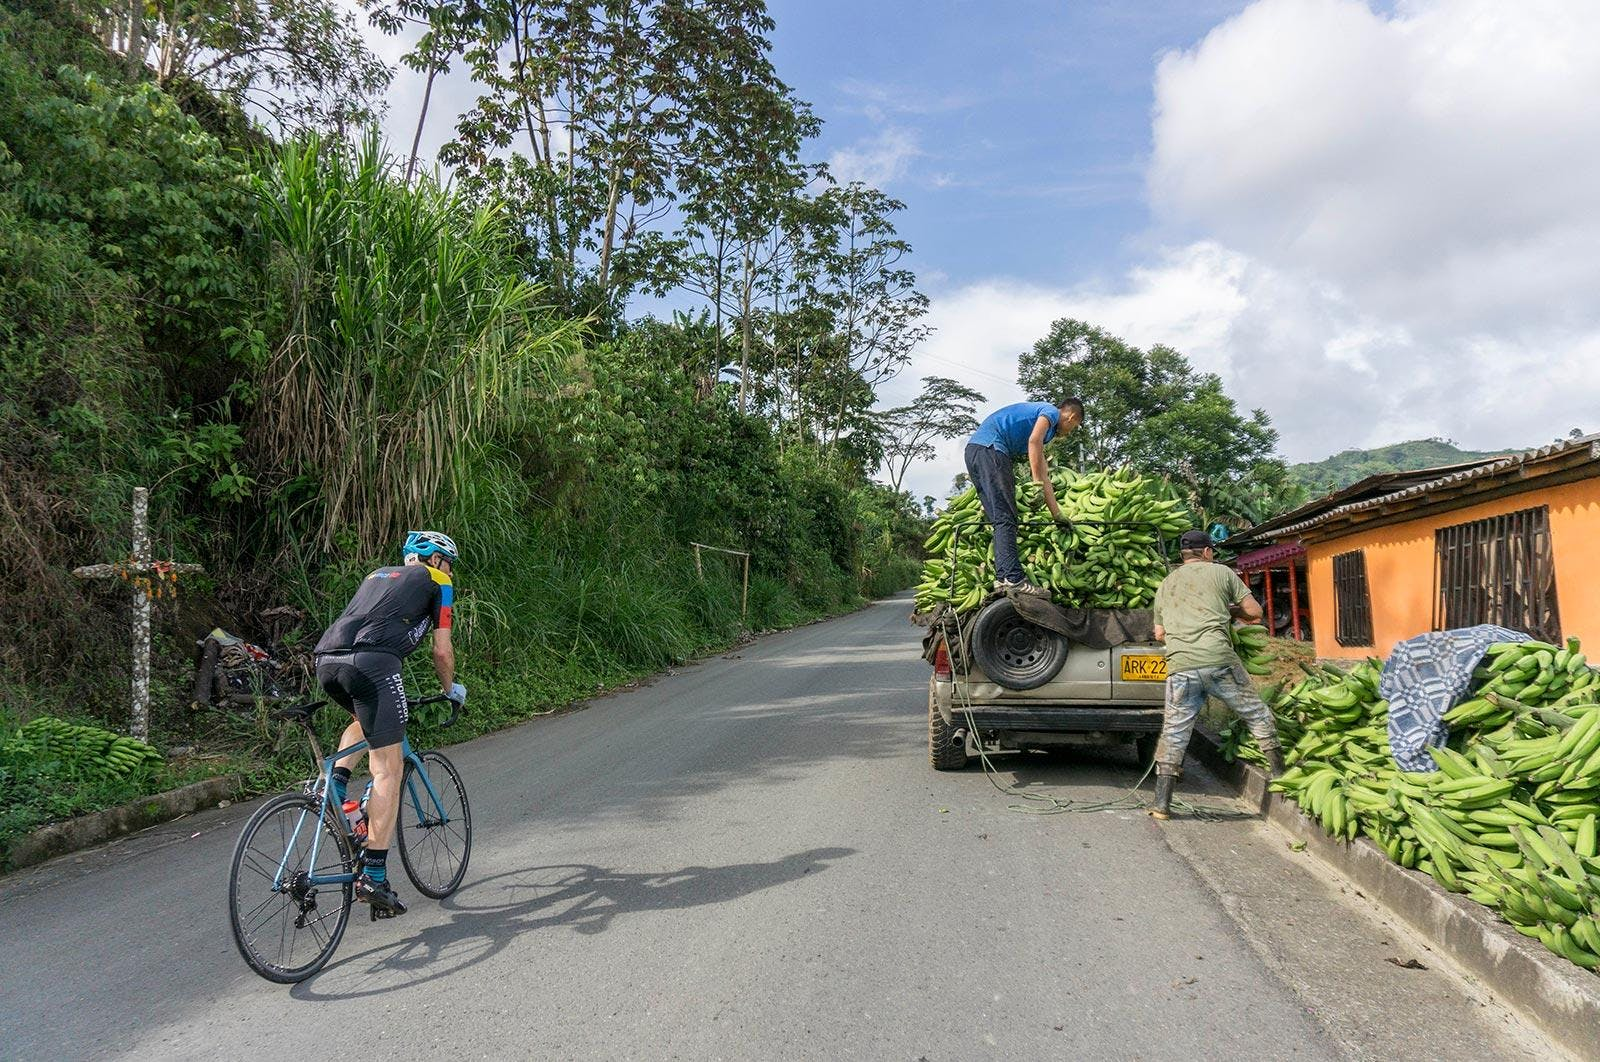 Thomson bike tours in Colombia, cycling past some banana farmers